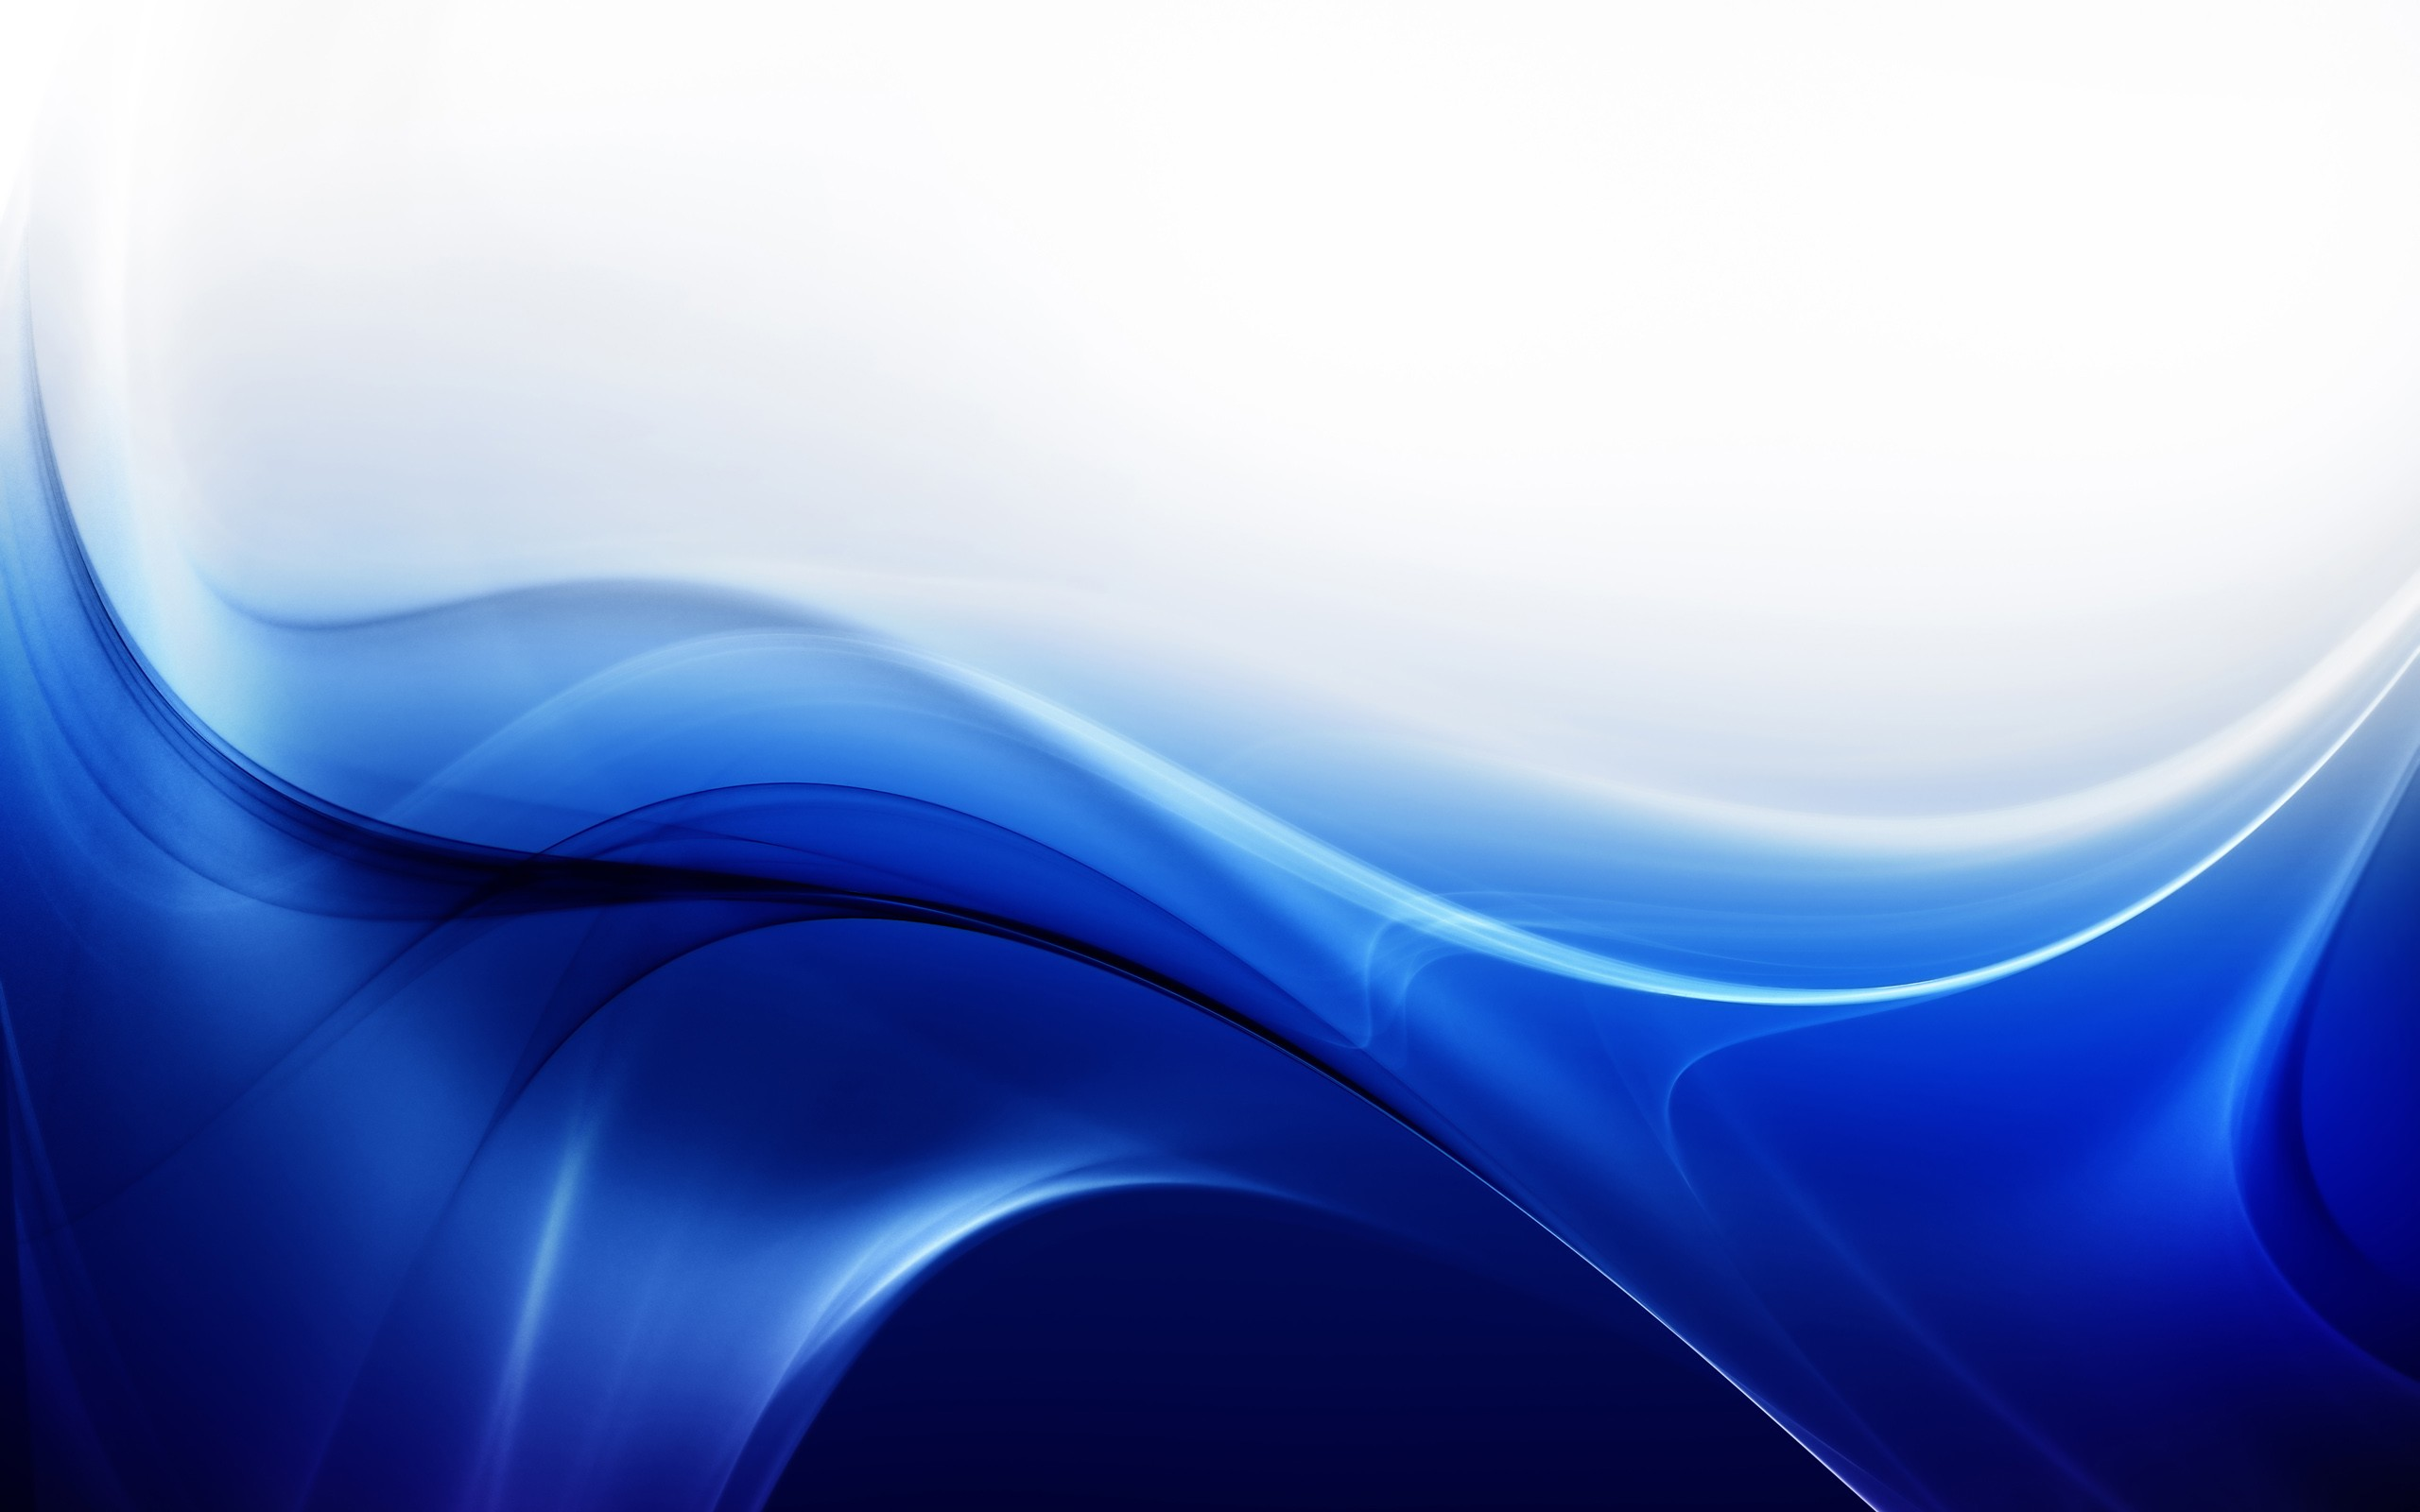 Blue Swirl Ipad Wallpaper Background And Theme: Wallpaper Blue ·① Download Free Cool HD Backgrounds For